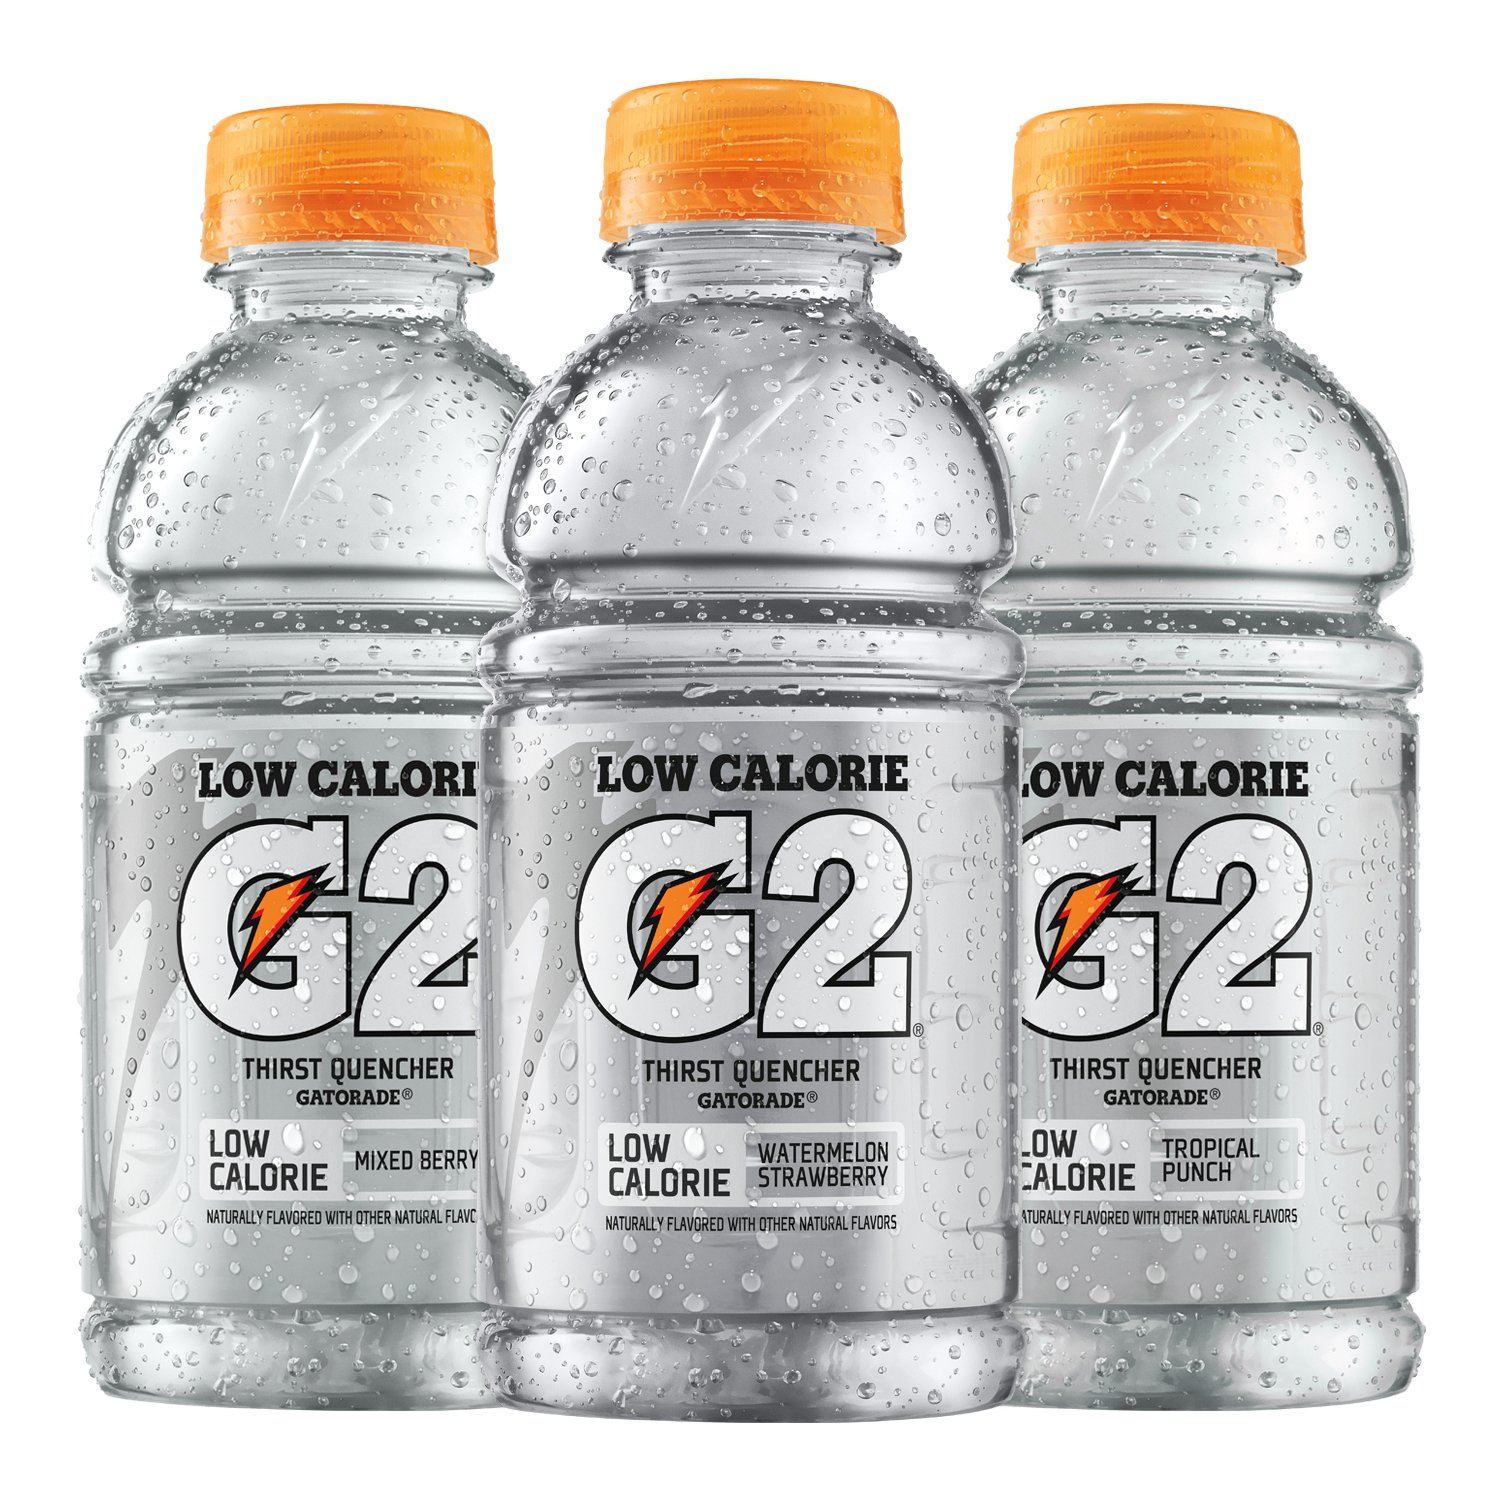 660d64b728b71 Gatorade G2 Thirst Quencher Low Calorie Clear Variety Pack, 12 Ounce  Bottles (Pack of 18)